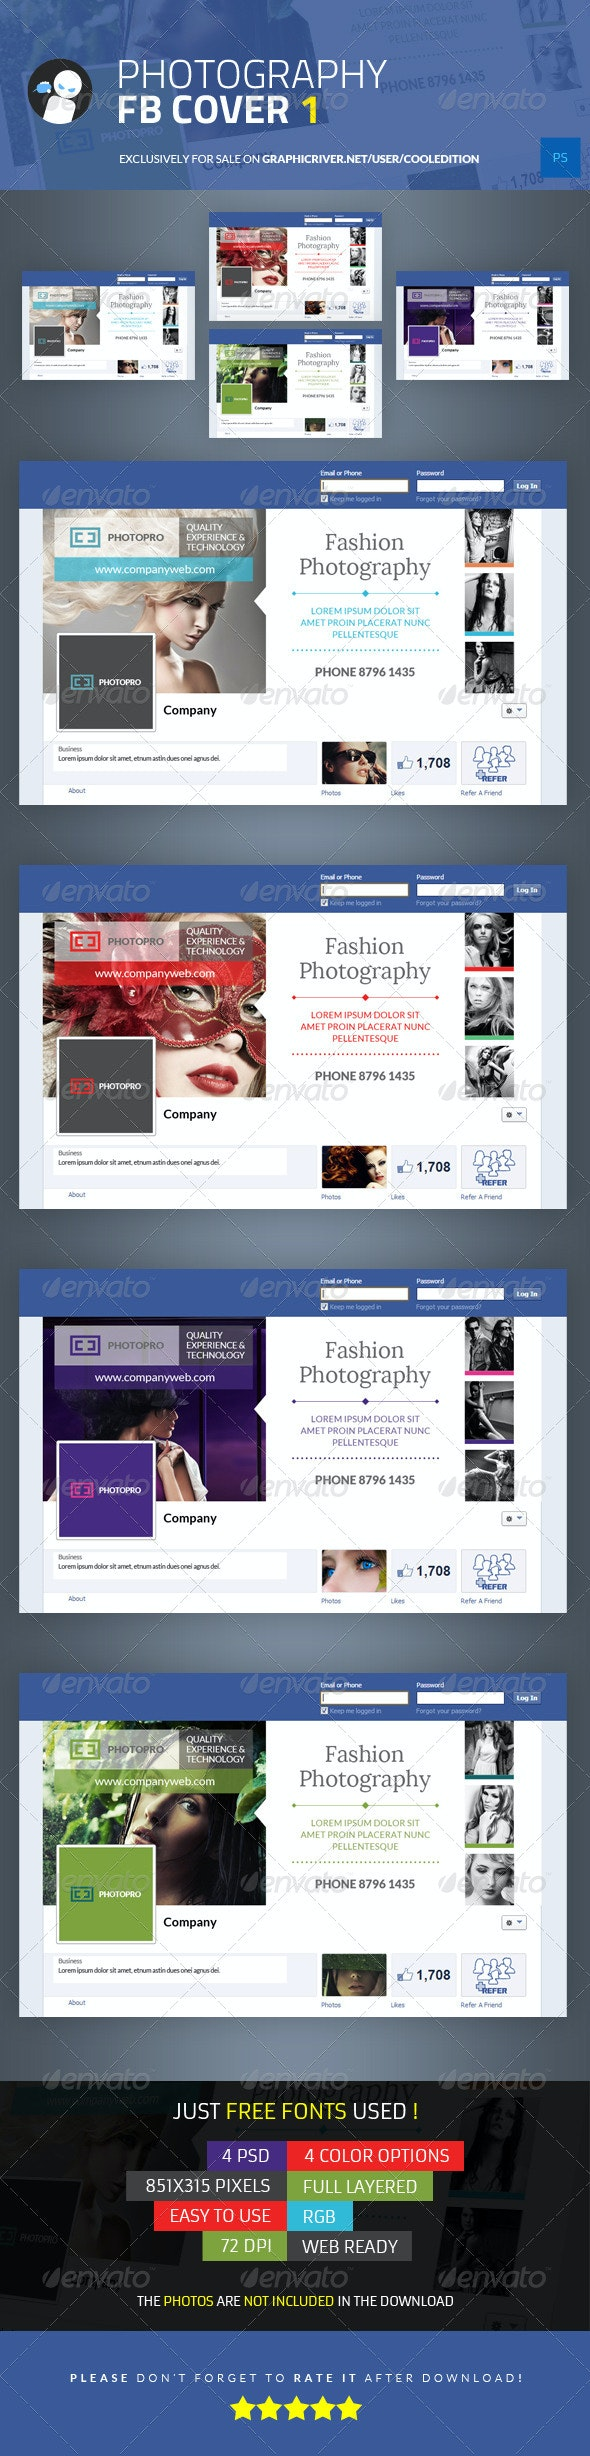 Photography Facebook Cover 1 - Facebook Timeline Covers Social Media